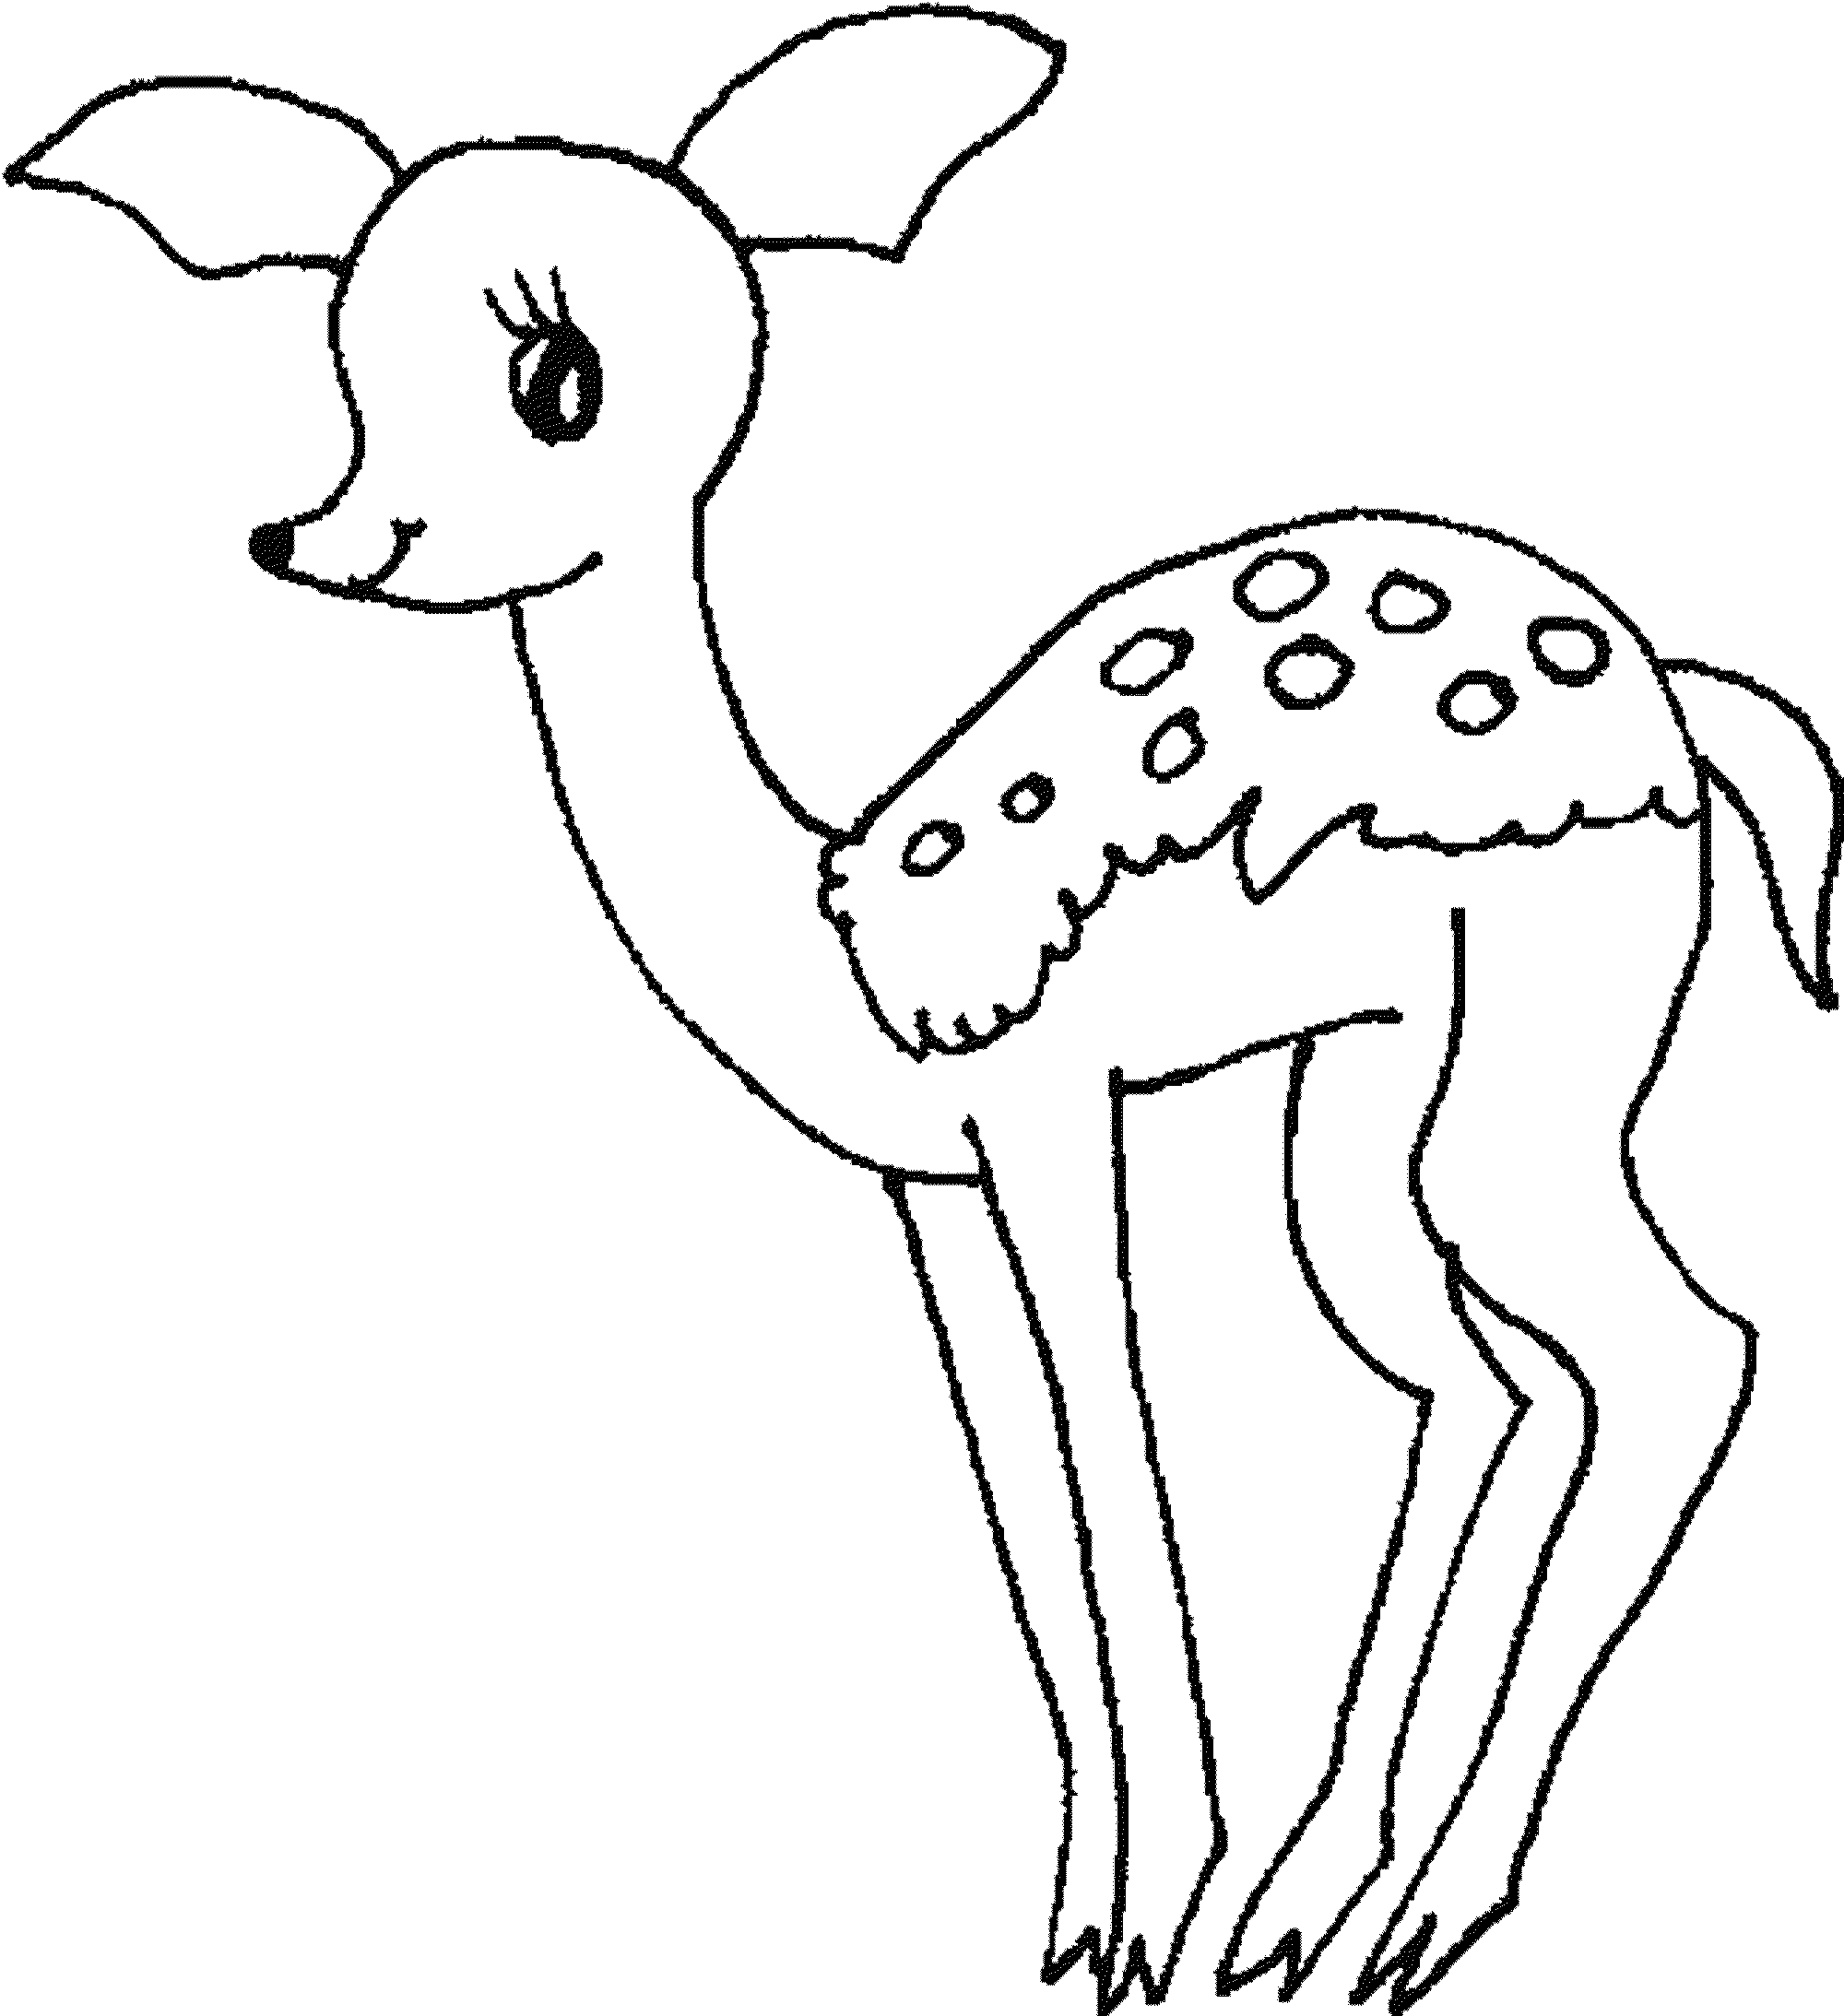 baby deer coloring pages bestappsforkids com rh bestappsforkids com coloring pages for kids dealing with death coloring pages for kids dental